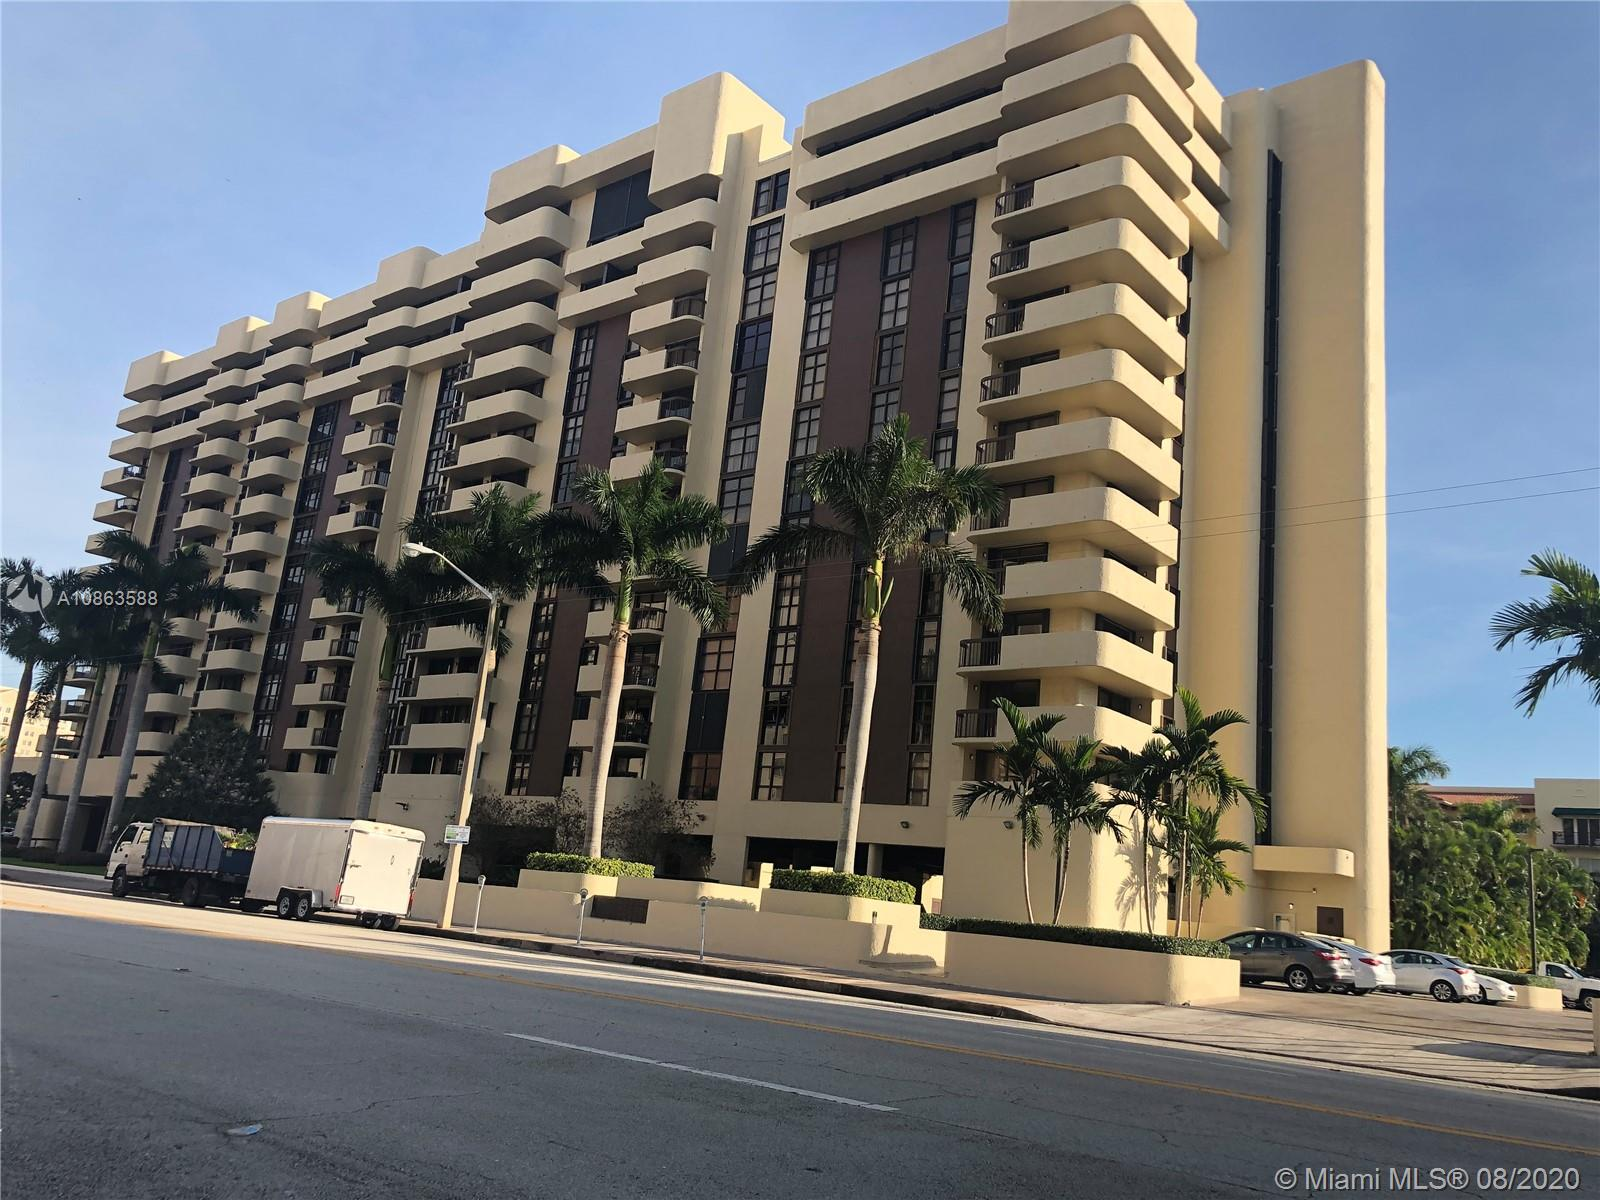 Location matters, is the most desirable location at Coral Gables. Must see,  Spectacular South Florida view from 2 Balconies. Big And adorable open kitchen, wood floors, 1 1/2 bath, 1 Big master. All through out exquisite finishes. One of a kind big living room area, substantially remodeled. Enjoy Restaurants, and  boutiques In downtown Coral Gables within walking distance. Aesthetically pleasing, bright and adorable. Swimming pool, gym And game room. Low HOA. Motivated seller